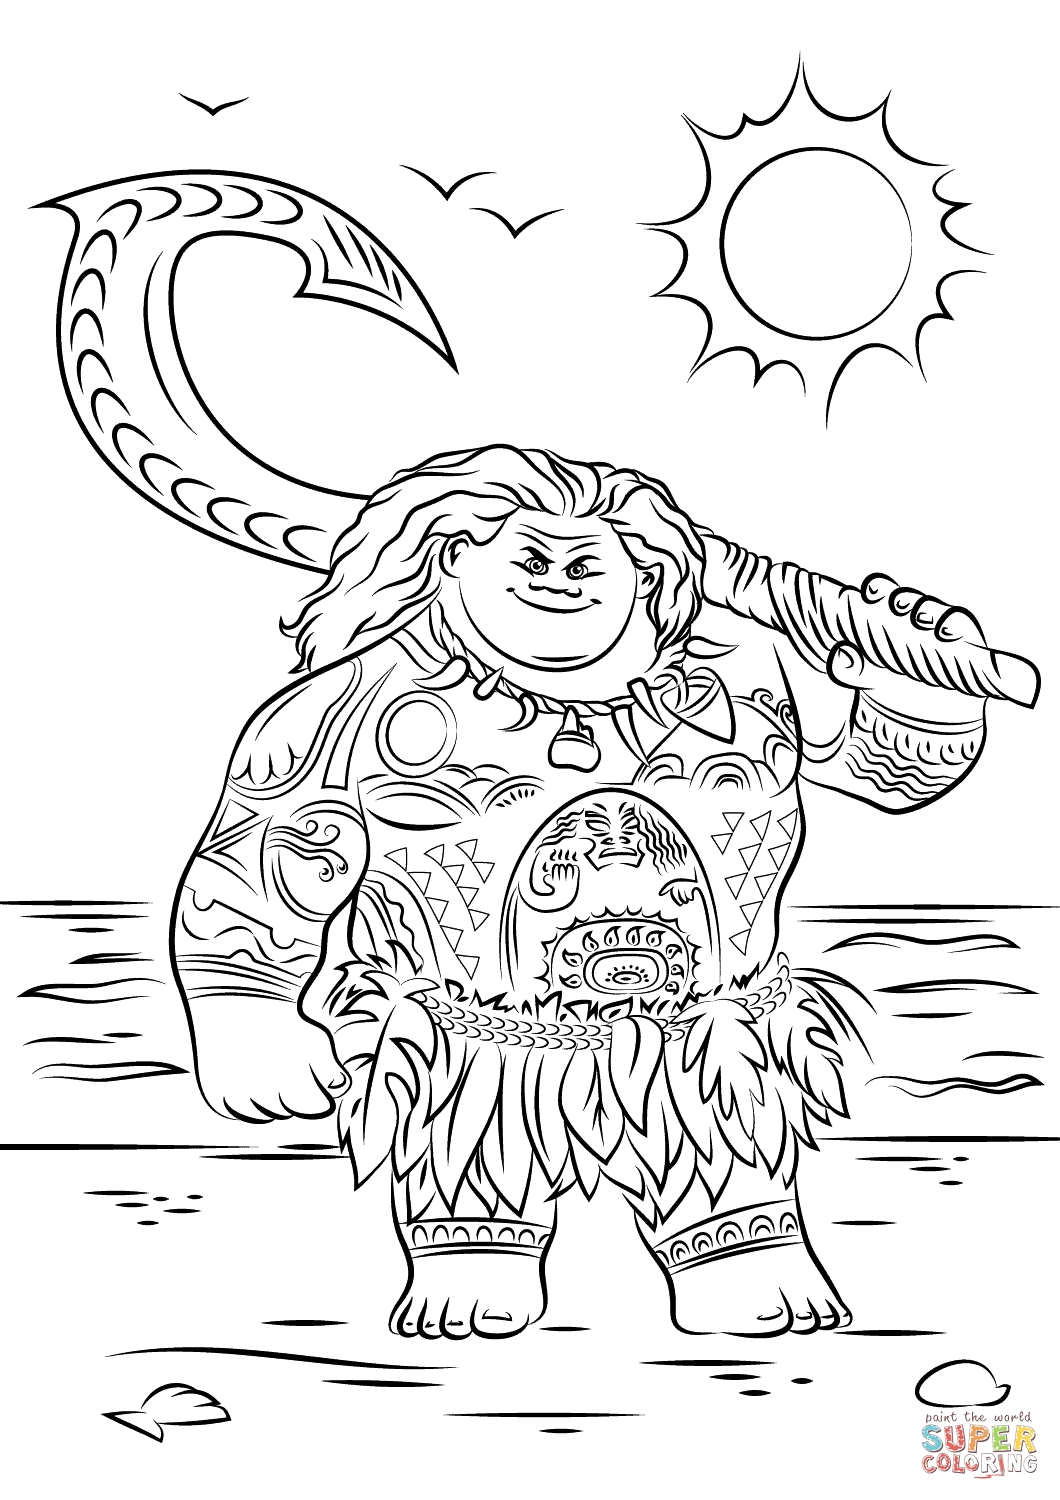 maui coloring pages - maui from moana